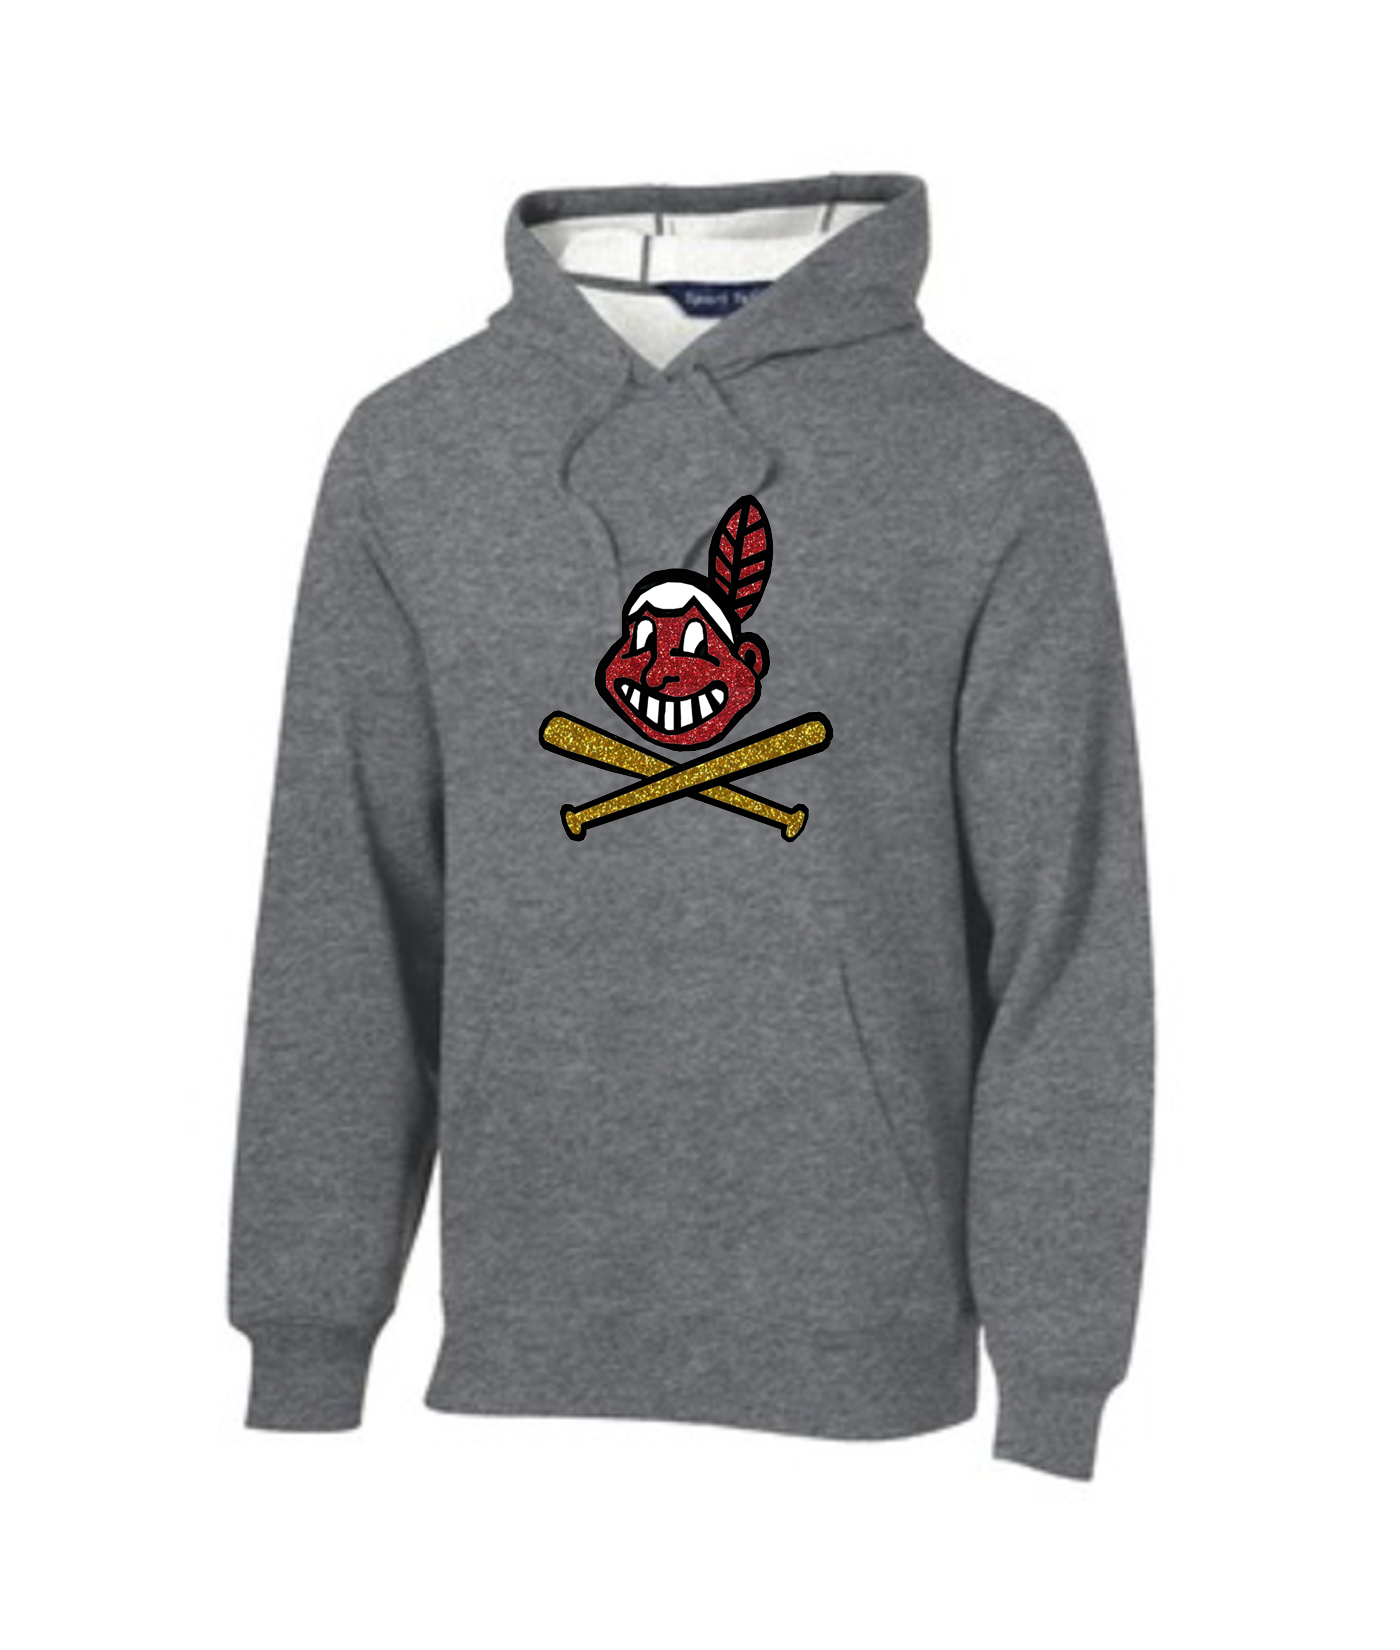 Sport-Tek Grey Pullover Hooded Sweatshirt Glitter Blackhawk